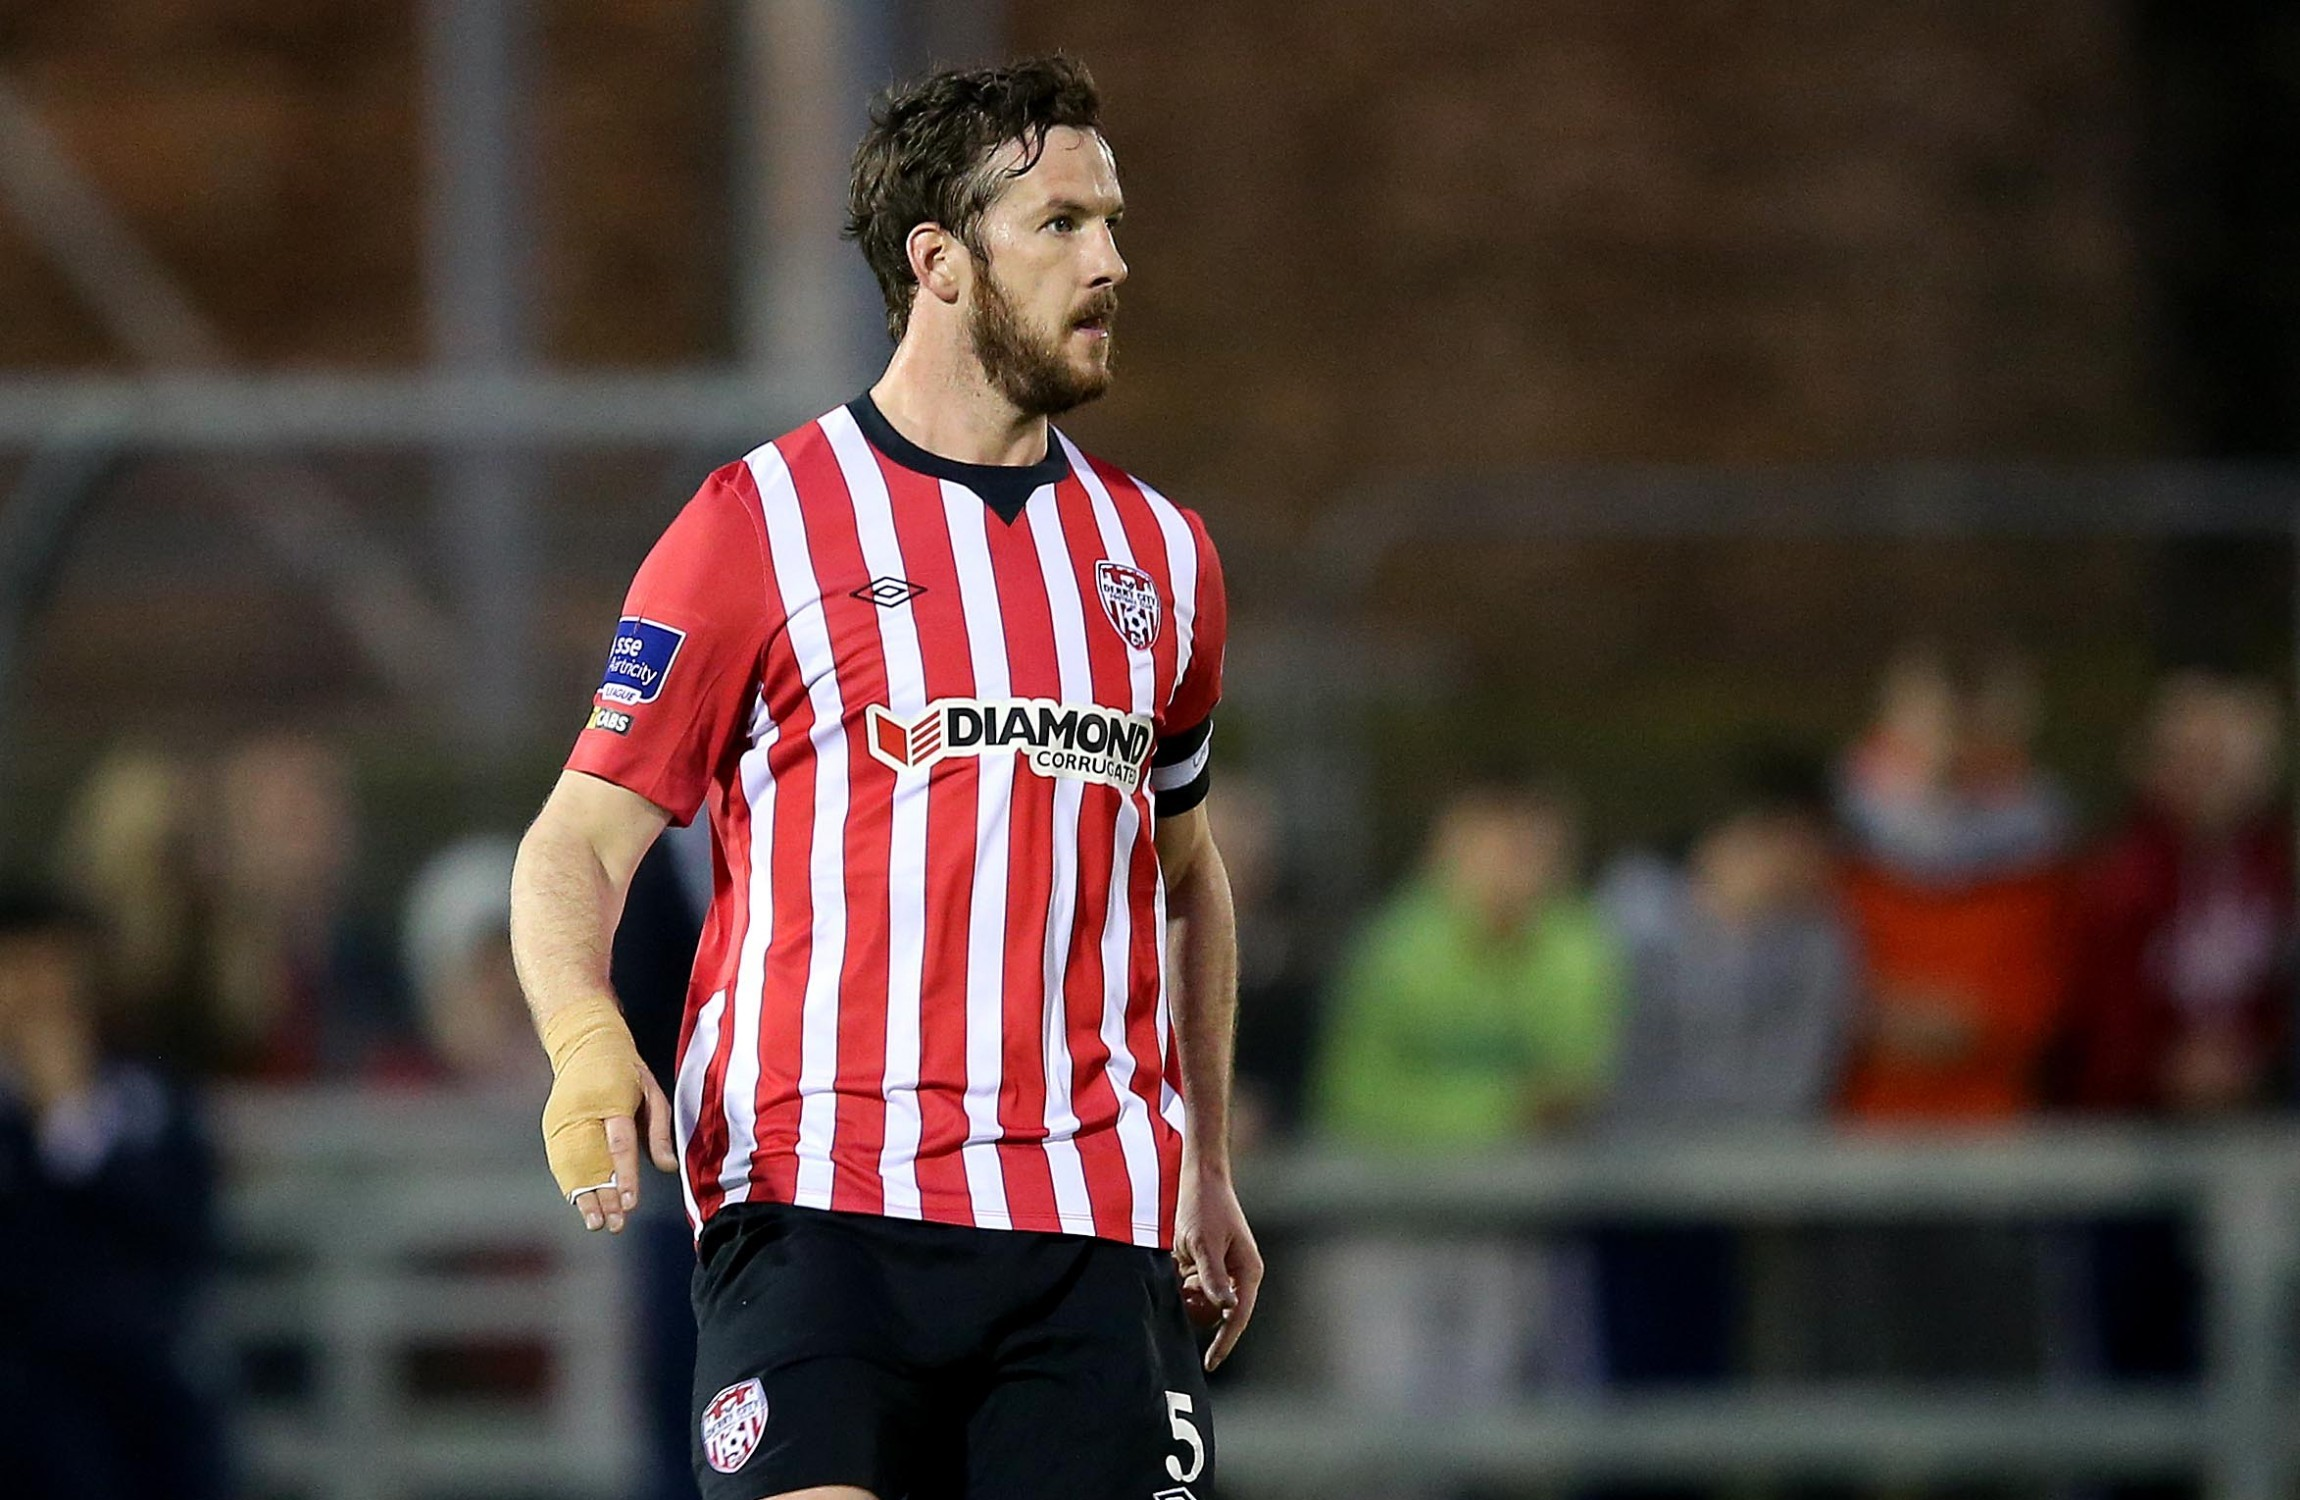 Derry soccer skipper Ryan Mcbride dies at 27